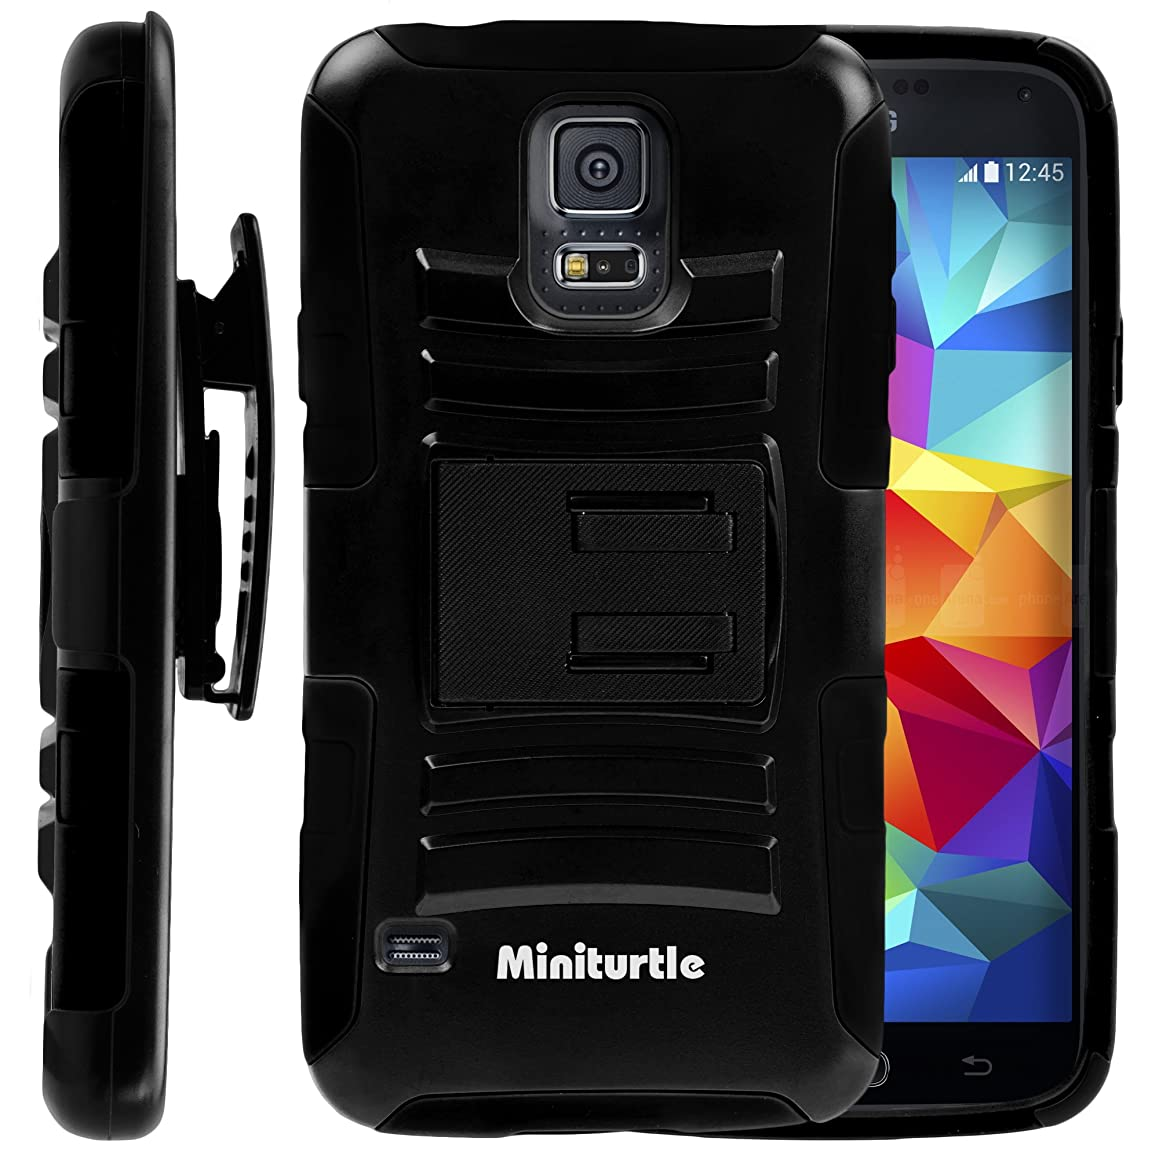 MINITURTLE, High Impact Rugged Hybrid Dual Layer Protective Armor Case Phone Cover with Built in Kickstand, Swivelling Holster Belt Clip, and Clear Screen Protector Film for New Android Smartphone 2014 Samsung Galaxy S 5 V (Black)